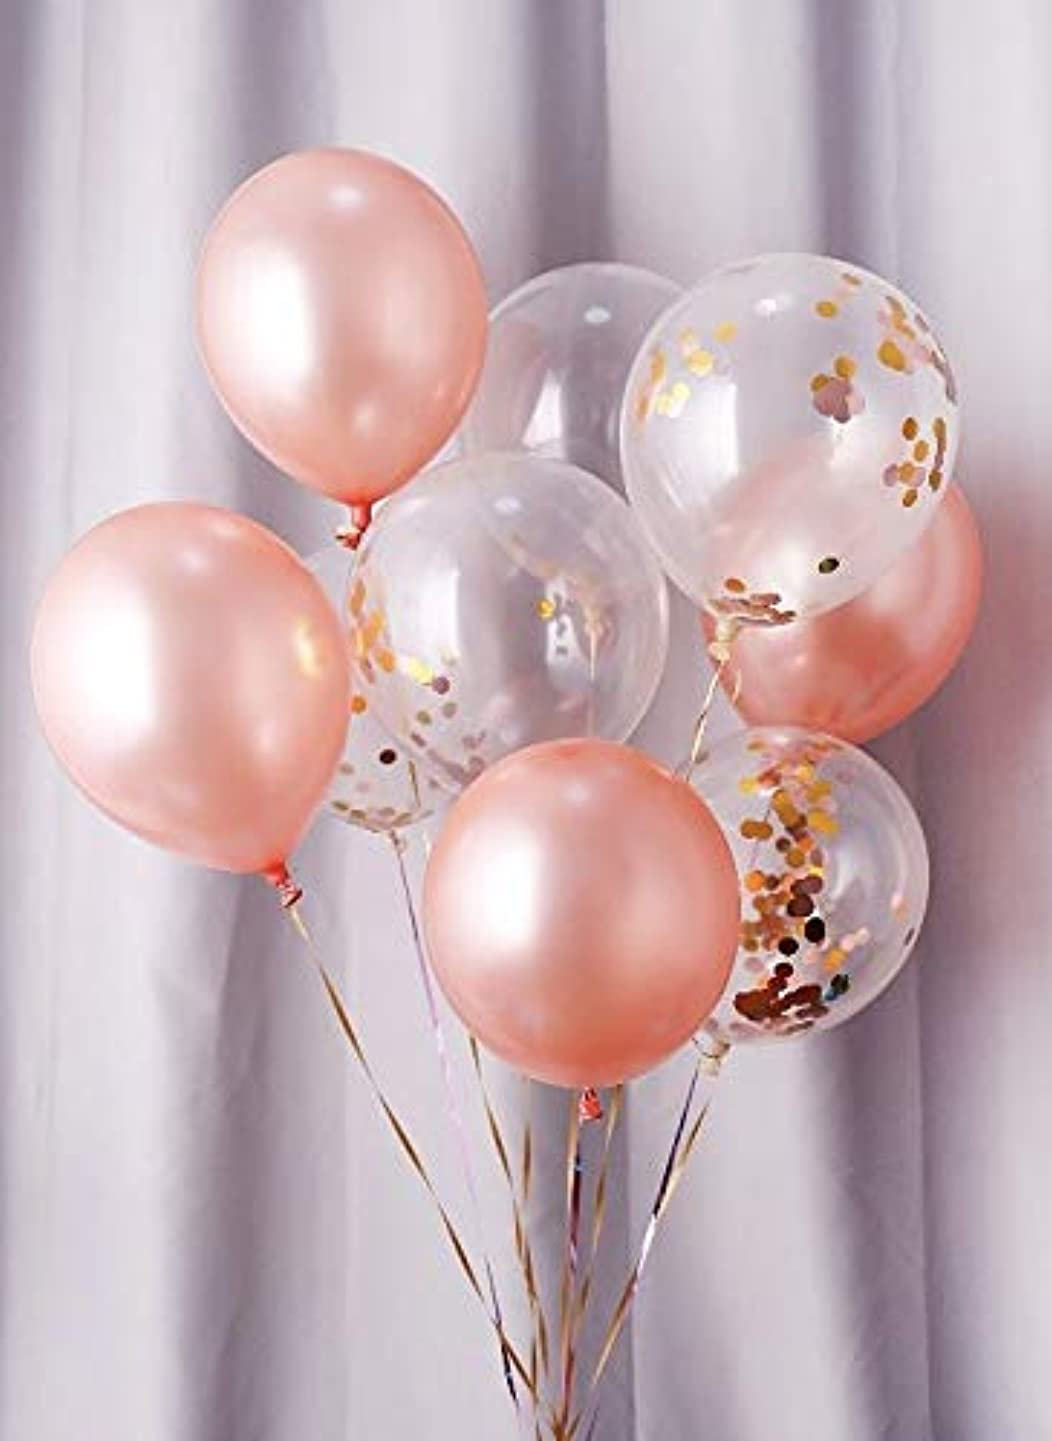 40 Pieces Rose Gold Balloons & Rose Gold Confetti Balloons, 12 Inches Party Balloons + Ribbon for Party Decorations, Wedding Decorations, Baby Shower Decorations and Proposal (Rose)